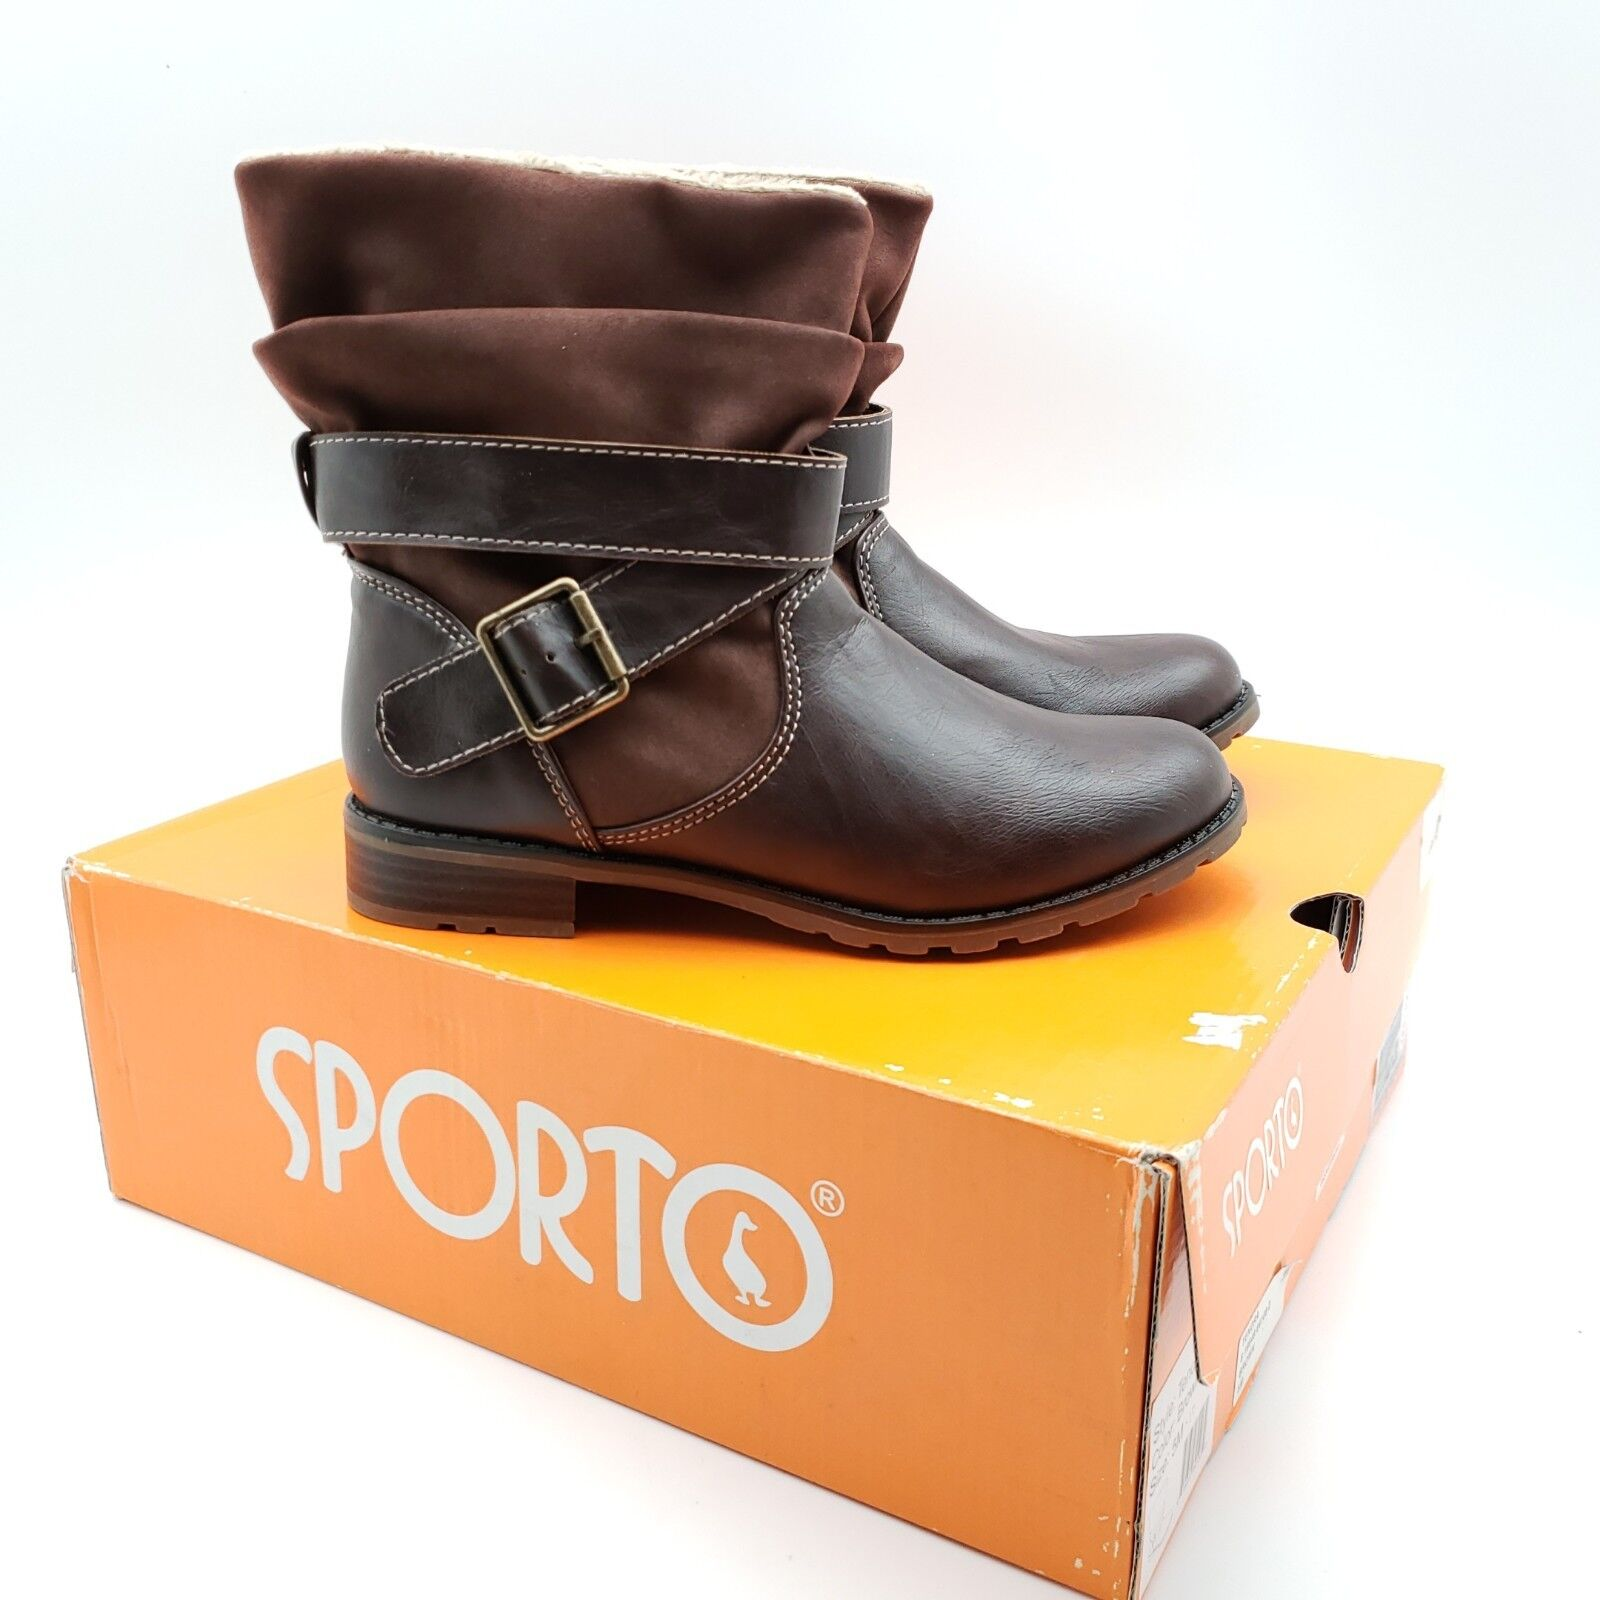 Sporto Tendra Women US 5 Brown Ankle Boot New/Display